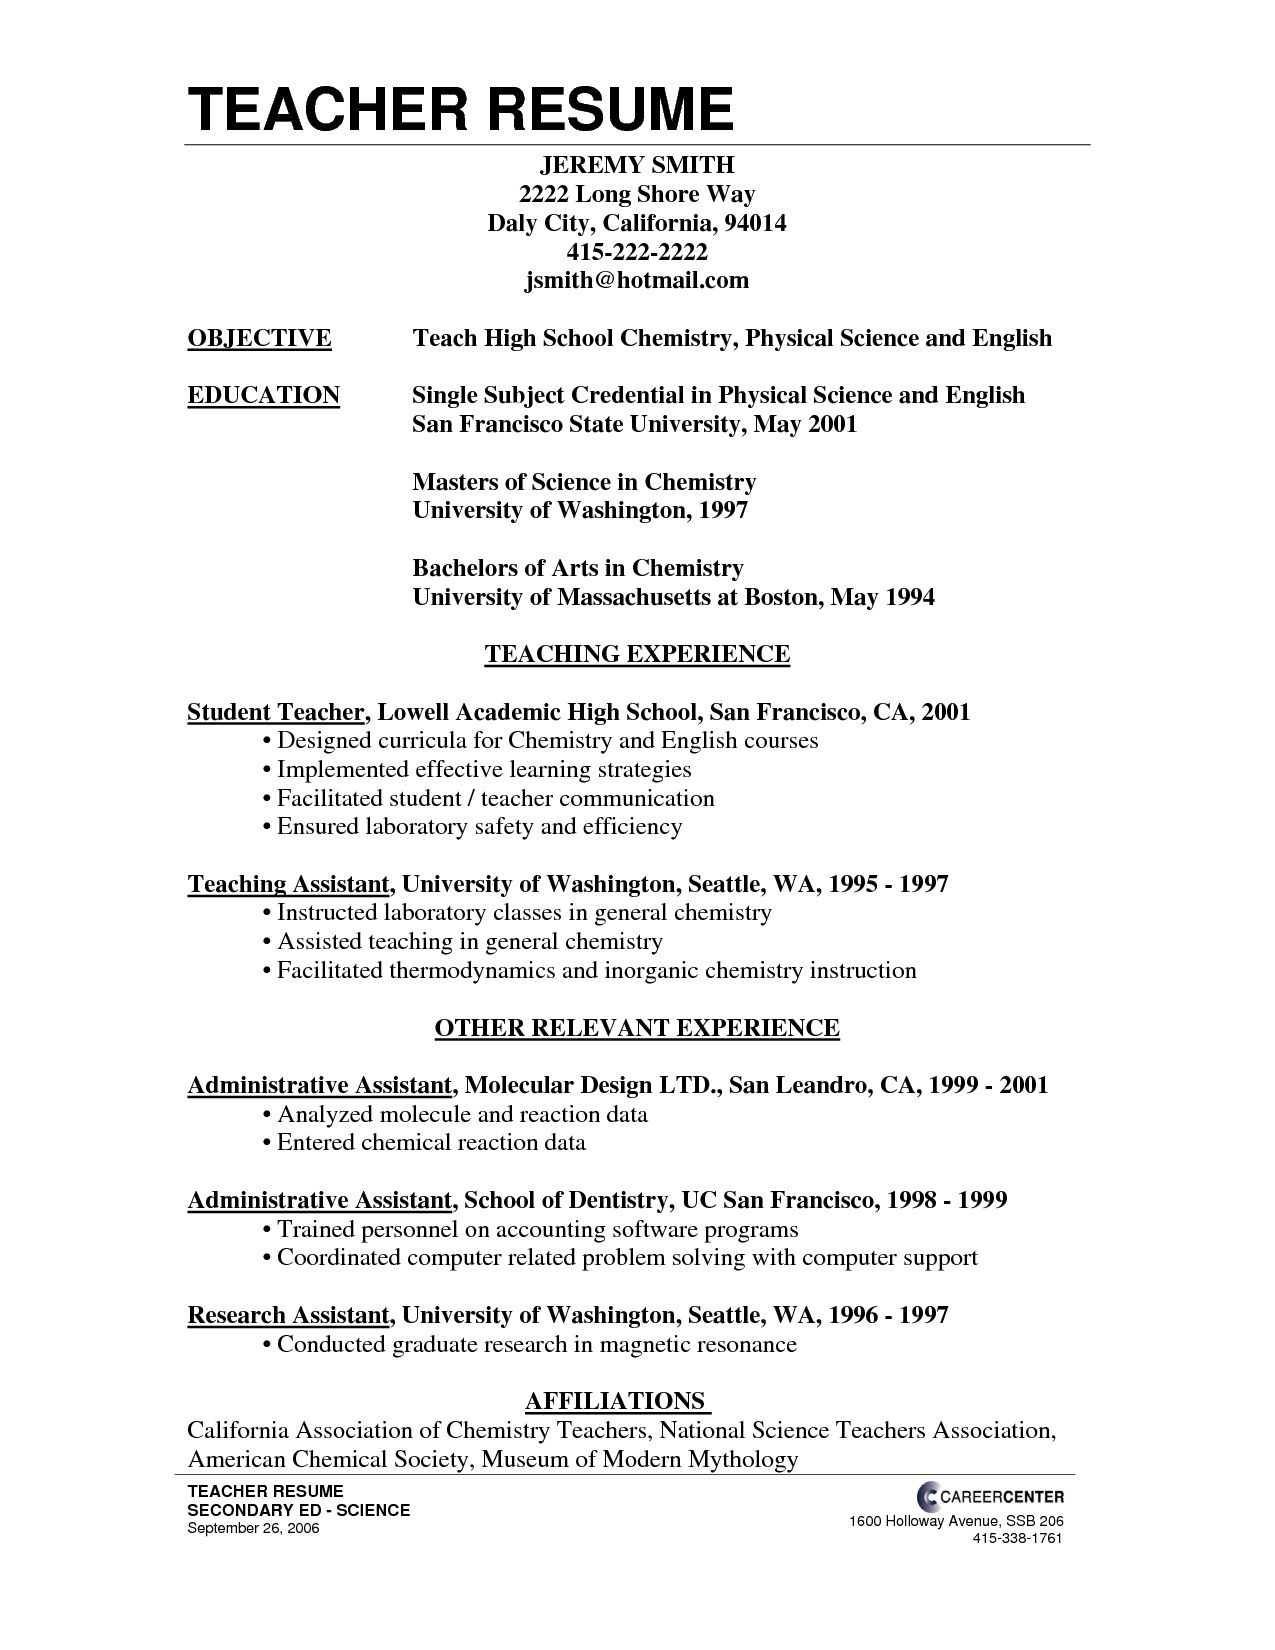 Resume For Teachers Job Grude Interpretomics Co